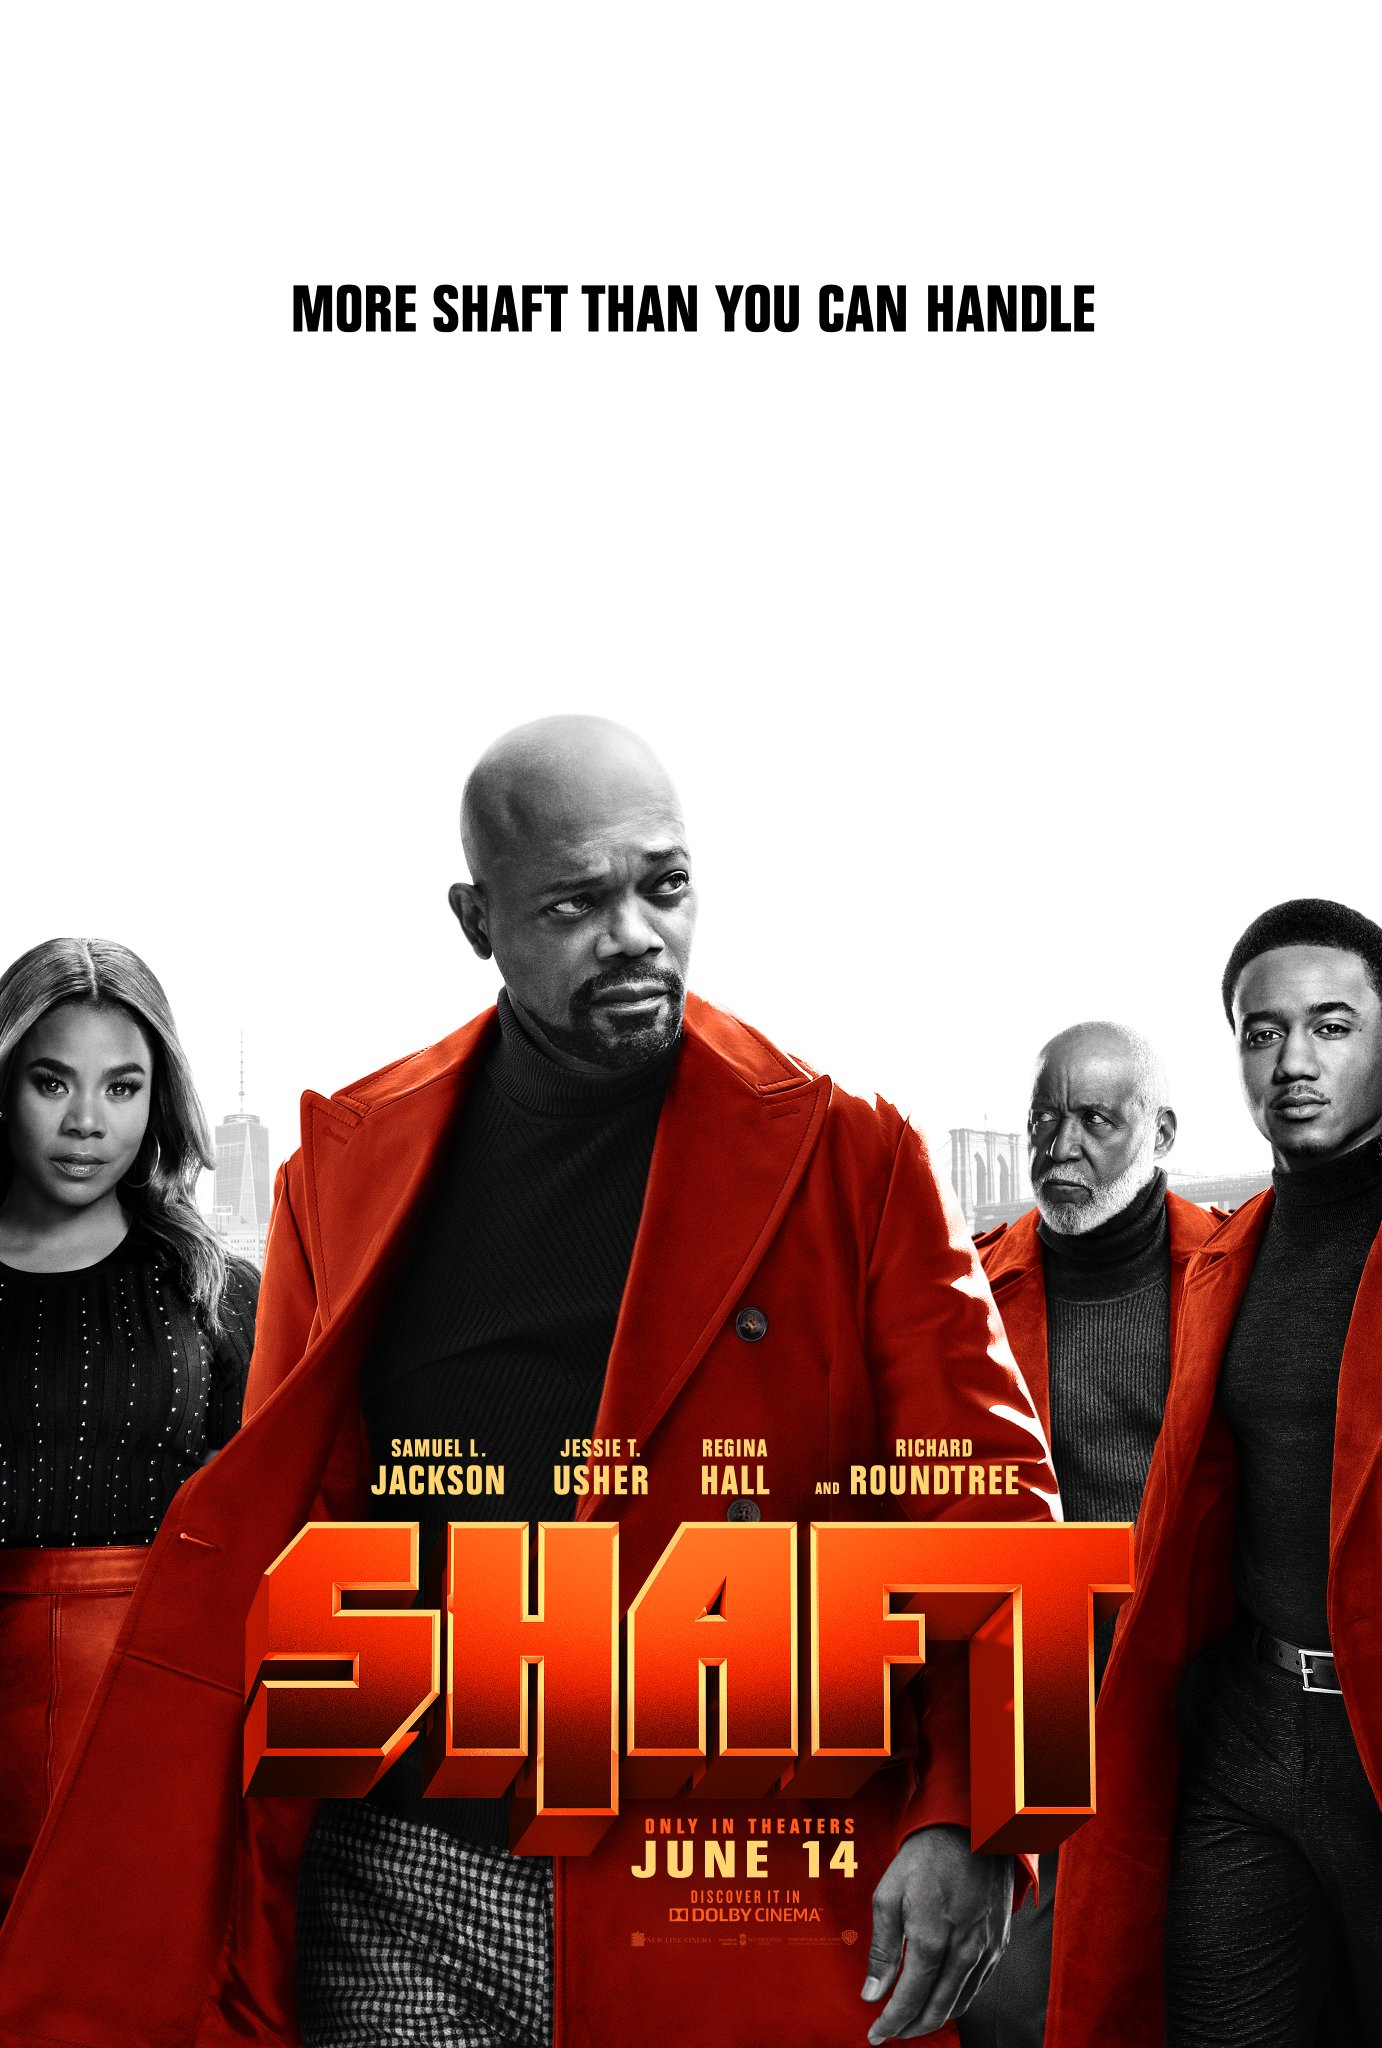 the-first-trailer-and-poster-for-shaft-is-more-shaft-than-you-can-handle2